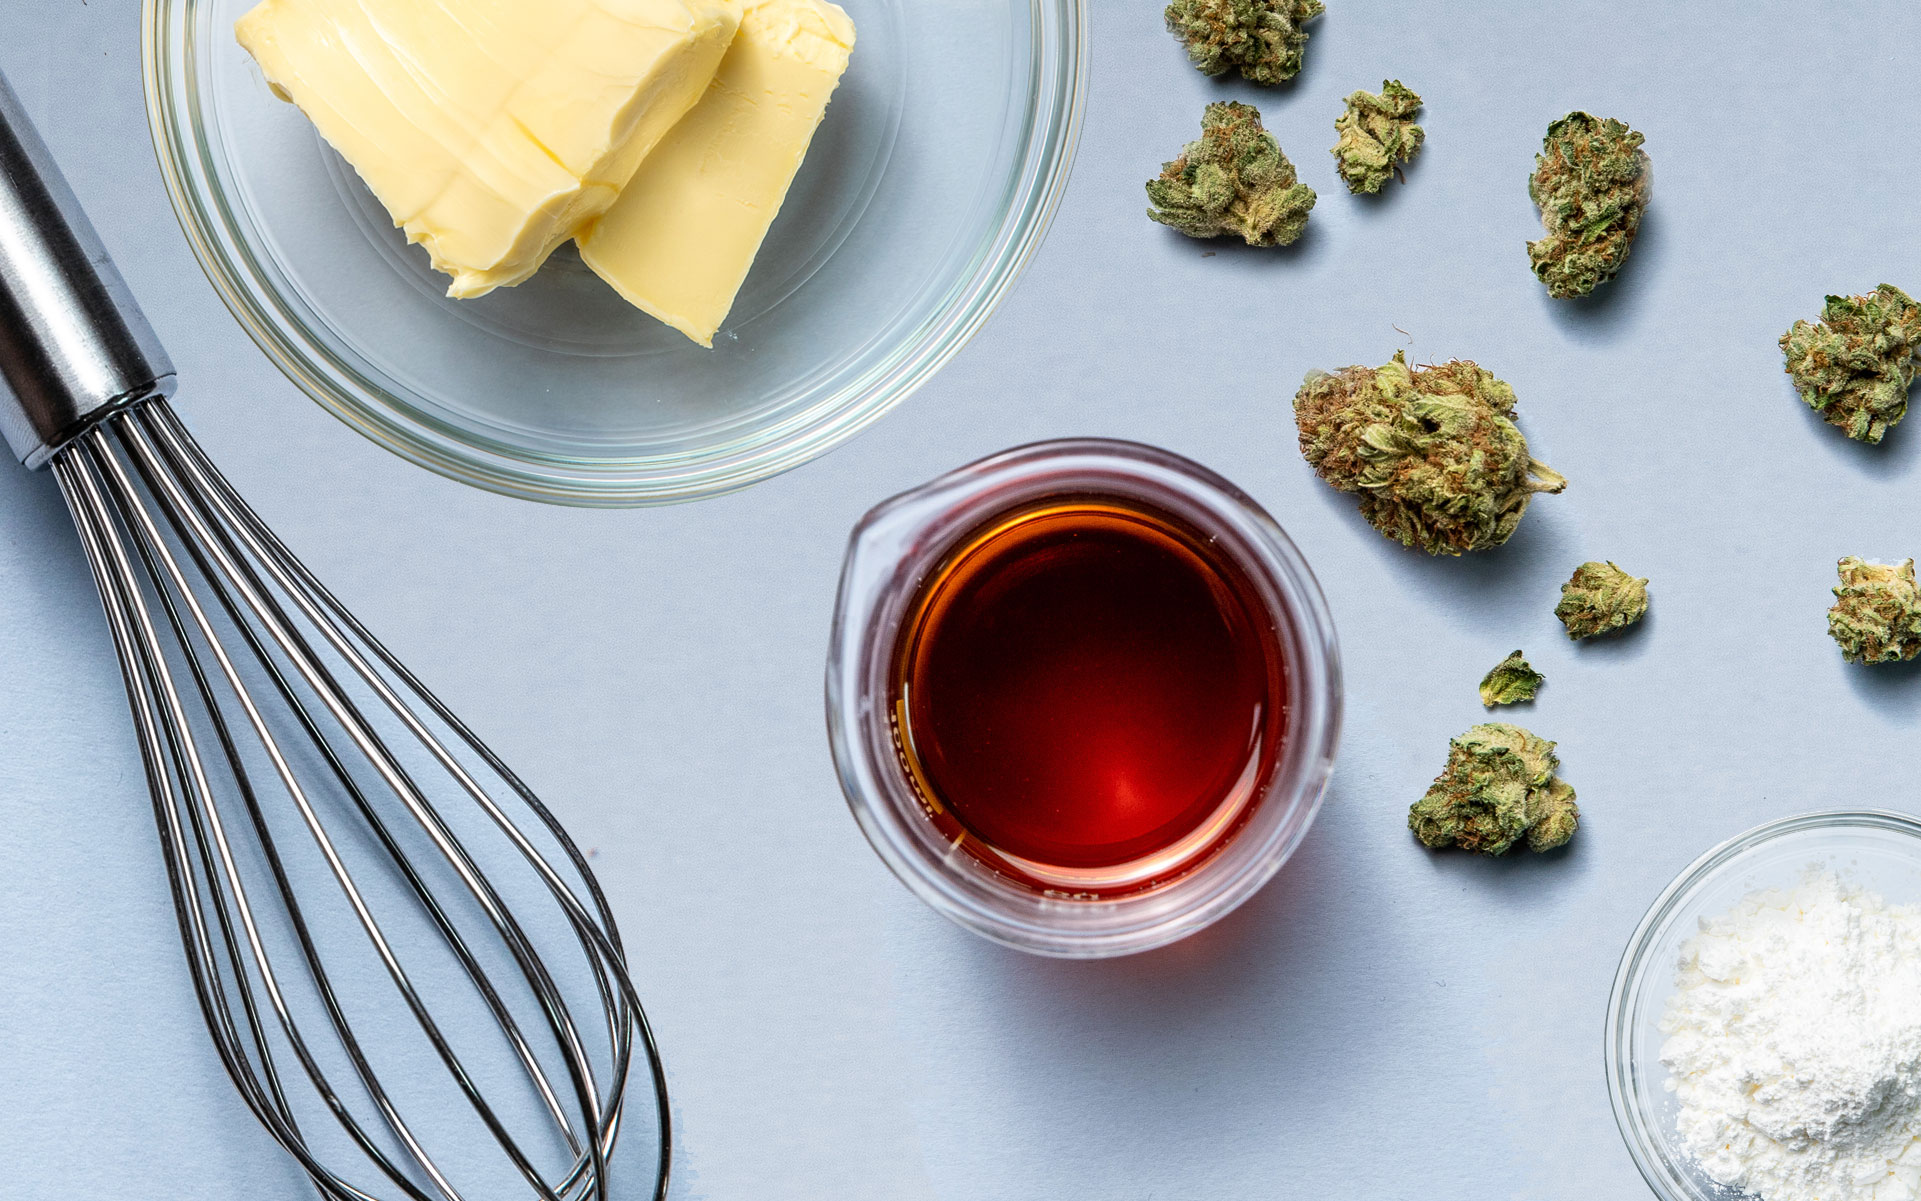 cannabis strains for cooking